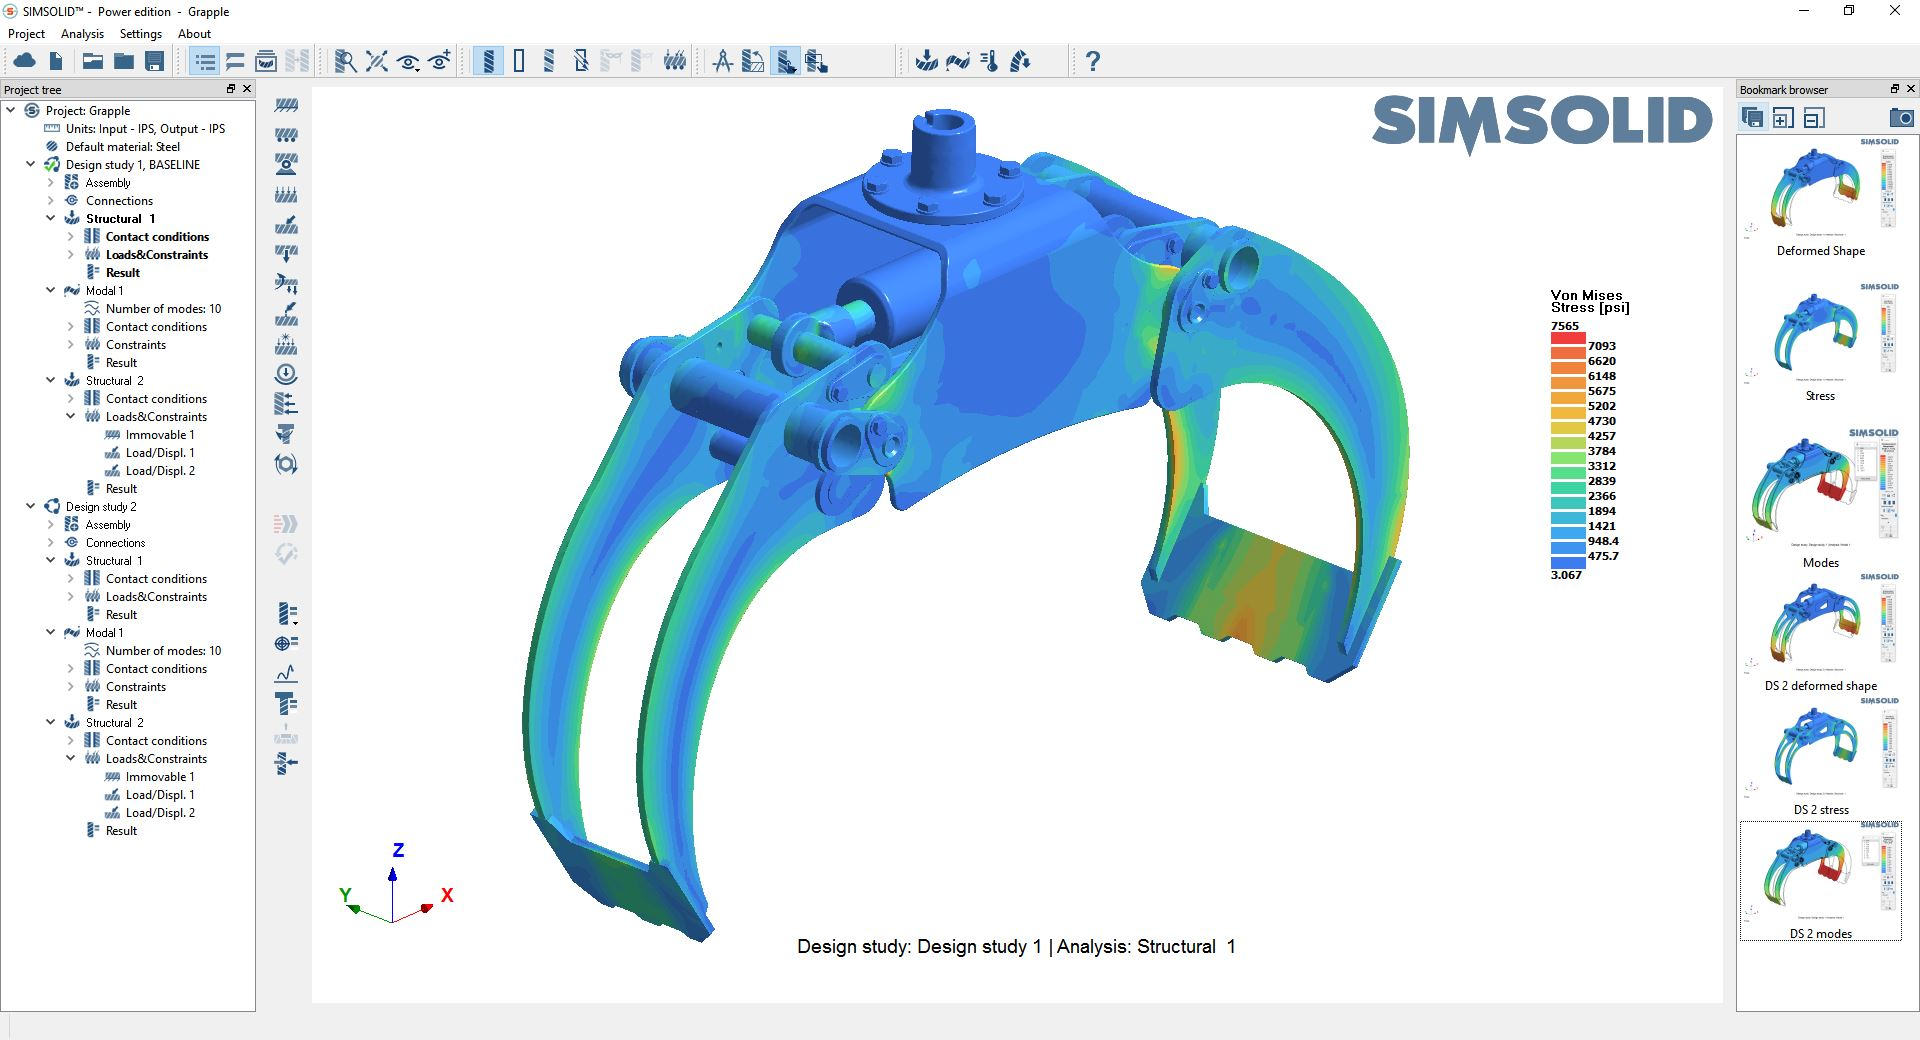 SIMSOLID-grapple